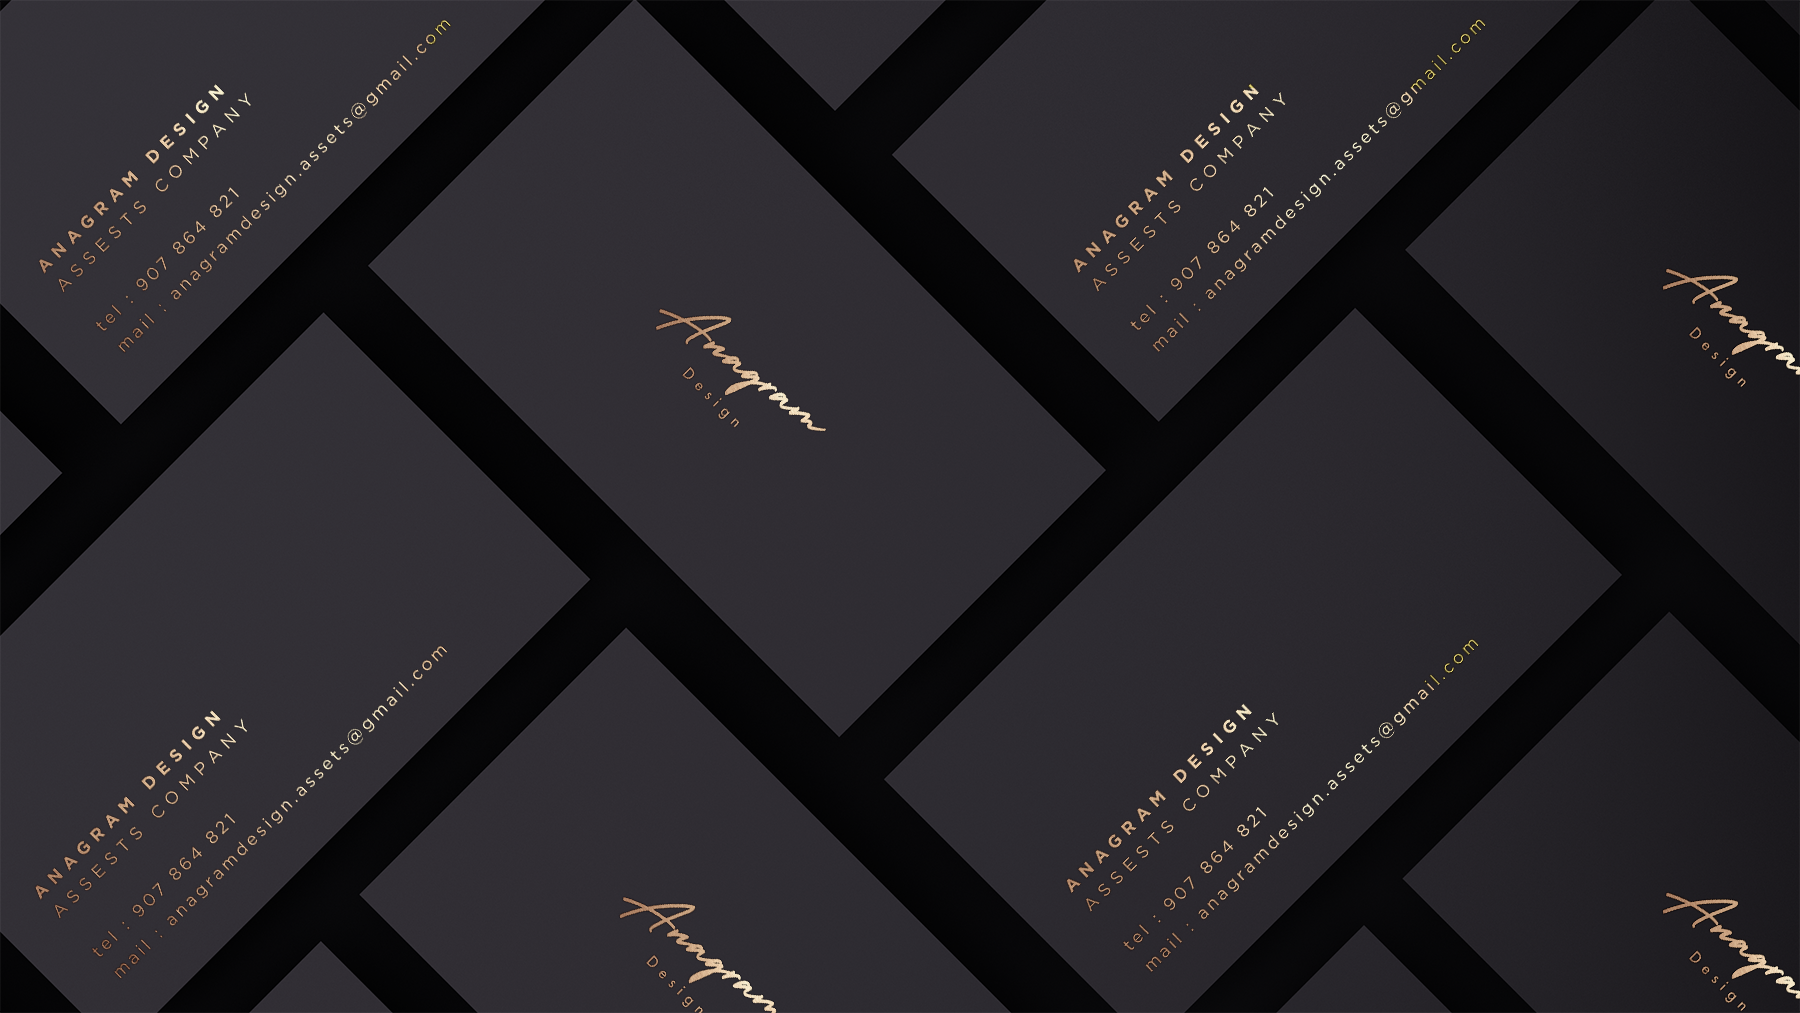 Black and Gold Branding Mockup